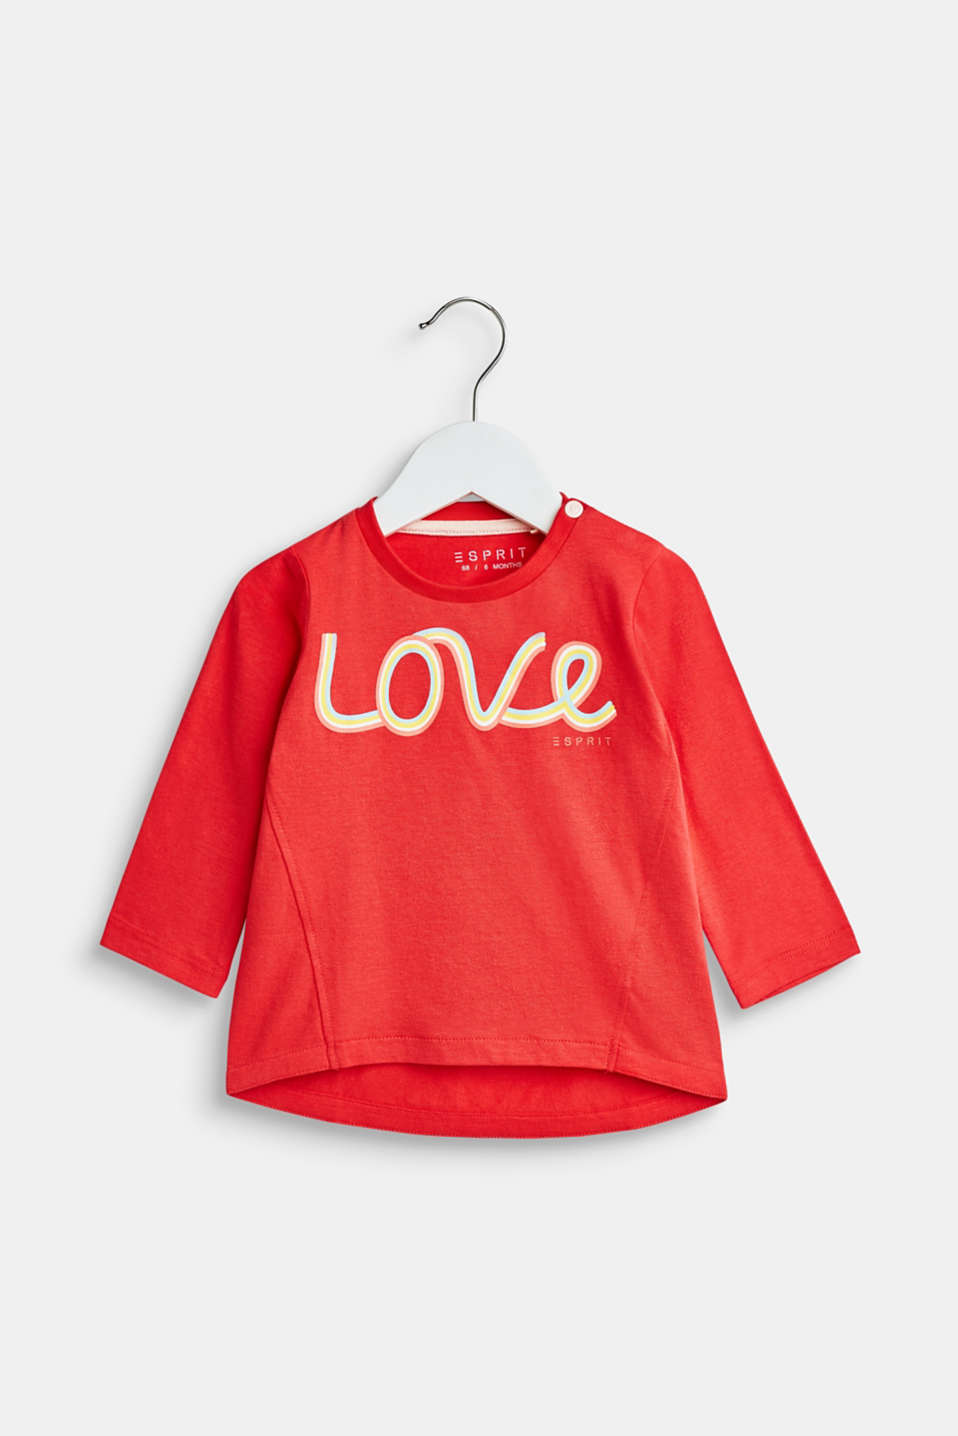 Esprit - 12 - t-shirt ls rainbow love